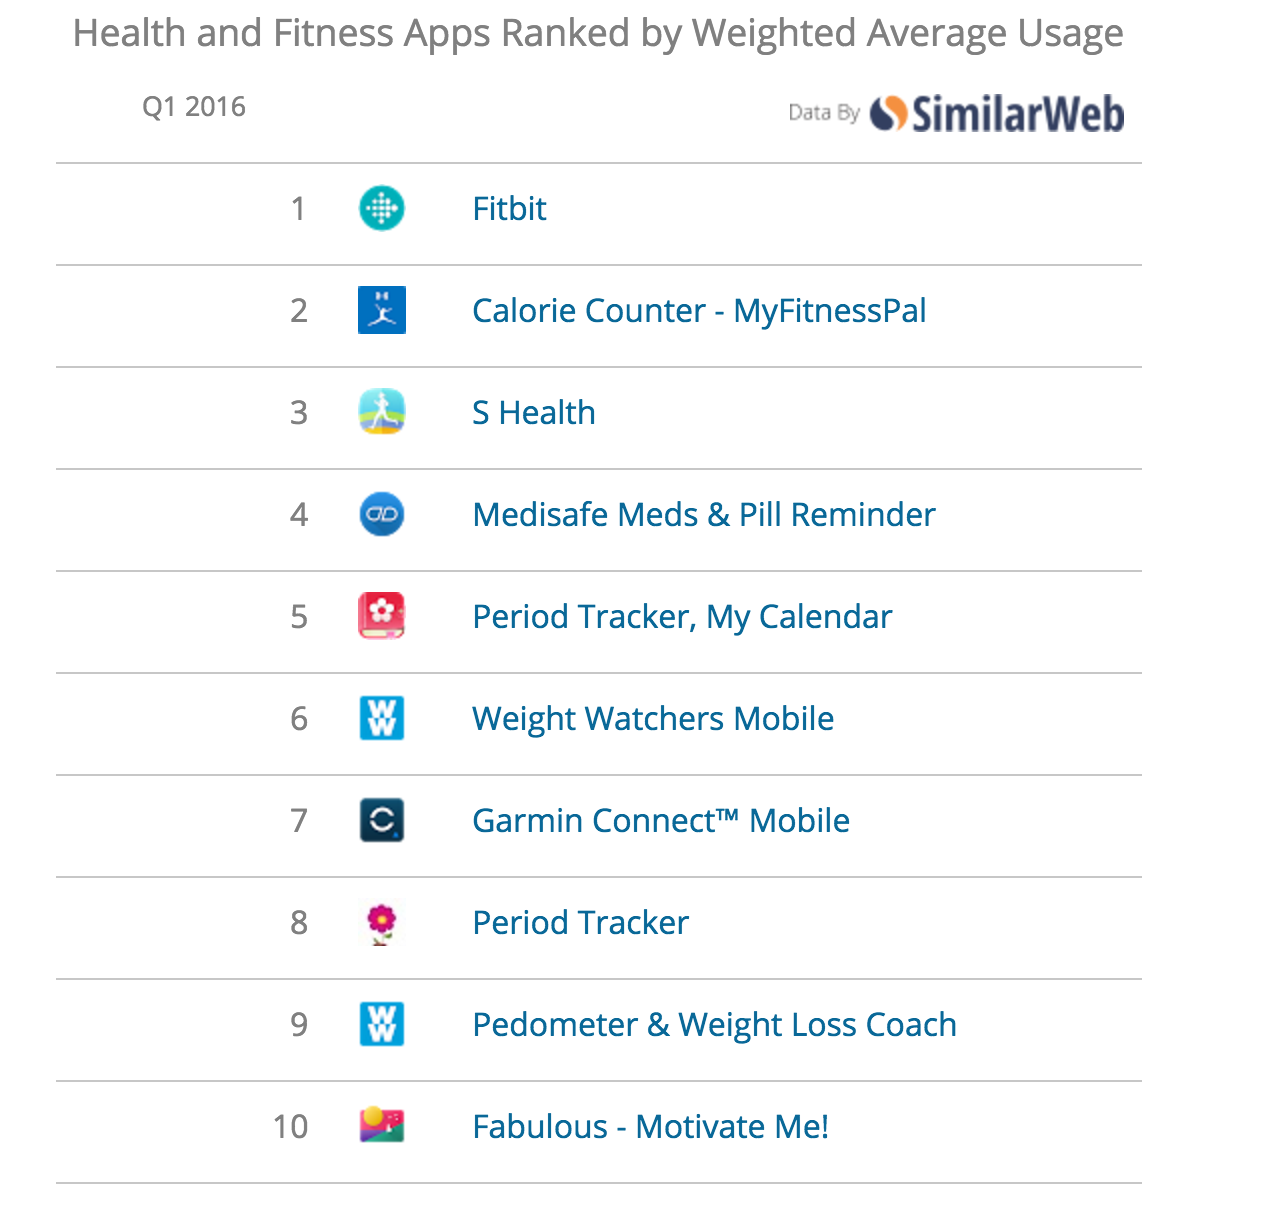 Health and Fitness Apps Usage Ranking